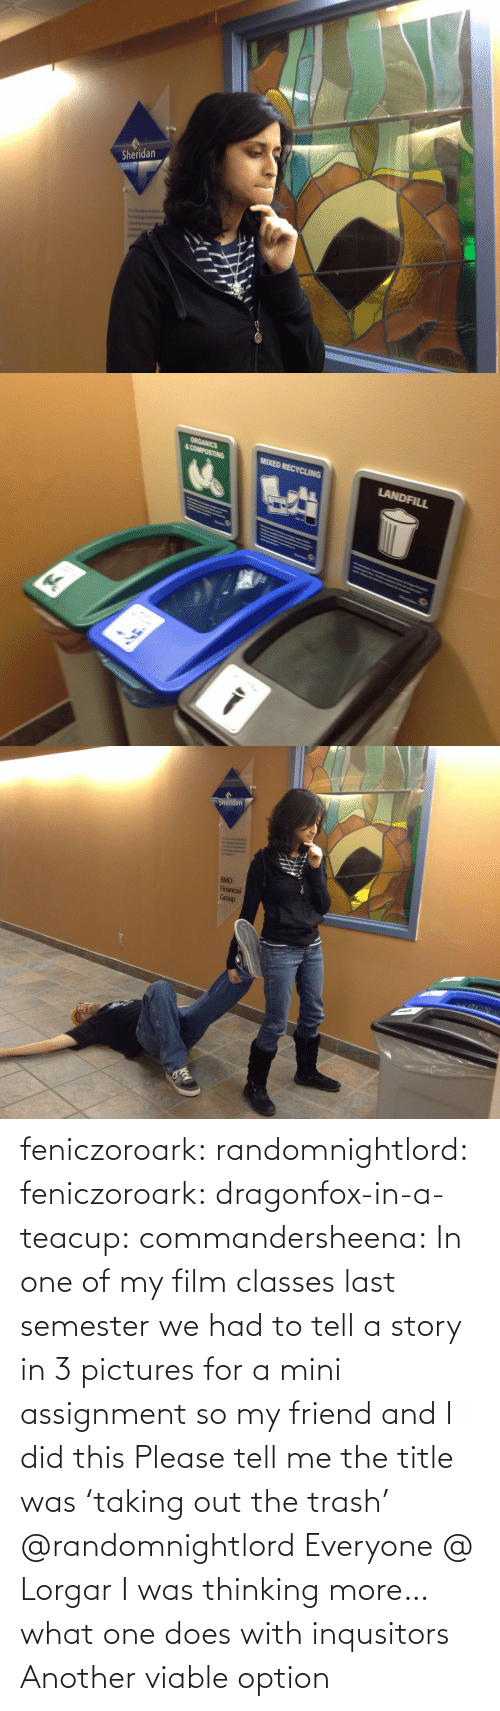 Trash, Tumblr, and Blog: feniczoroark:  randomnightlord:  feniczoroark:  dragonfox-in-a-teacup:  commandersheena: In one of my film classes last semester we had to tell a story in 3 pictures for a mini assignment so my friend and I did this   Please tell me the title was 'taking out the trash'   @randomnightlord    Everyone @ Lorgar   I was thinking more… what one does with inqusitors   Another viable option